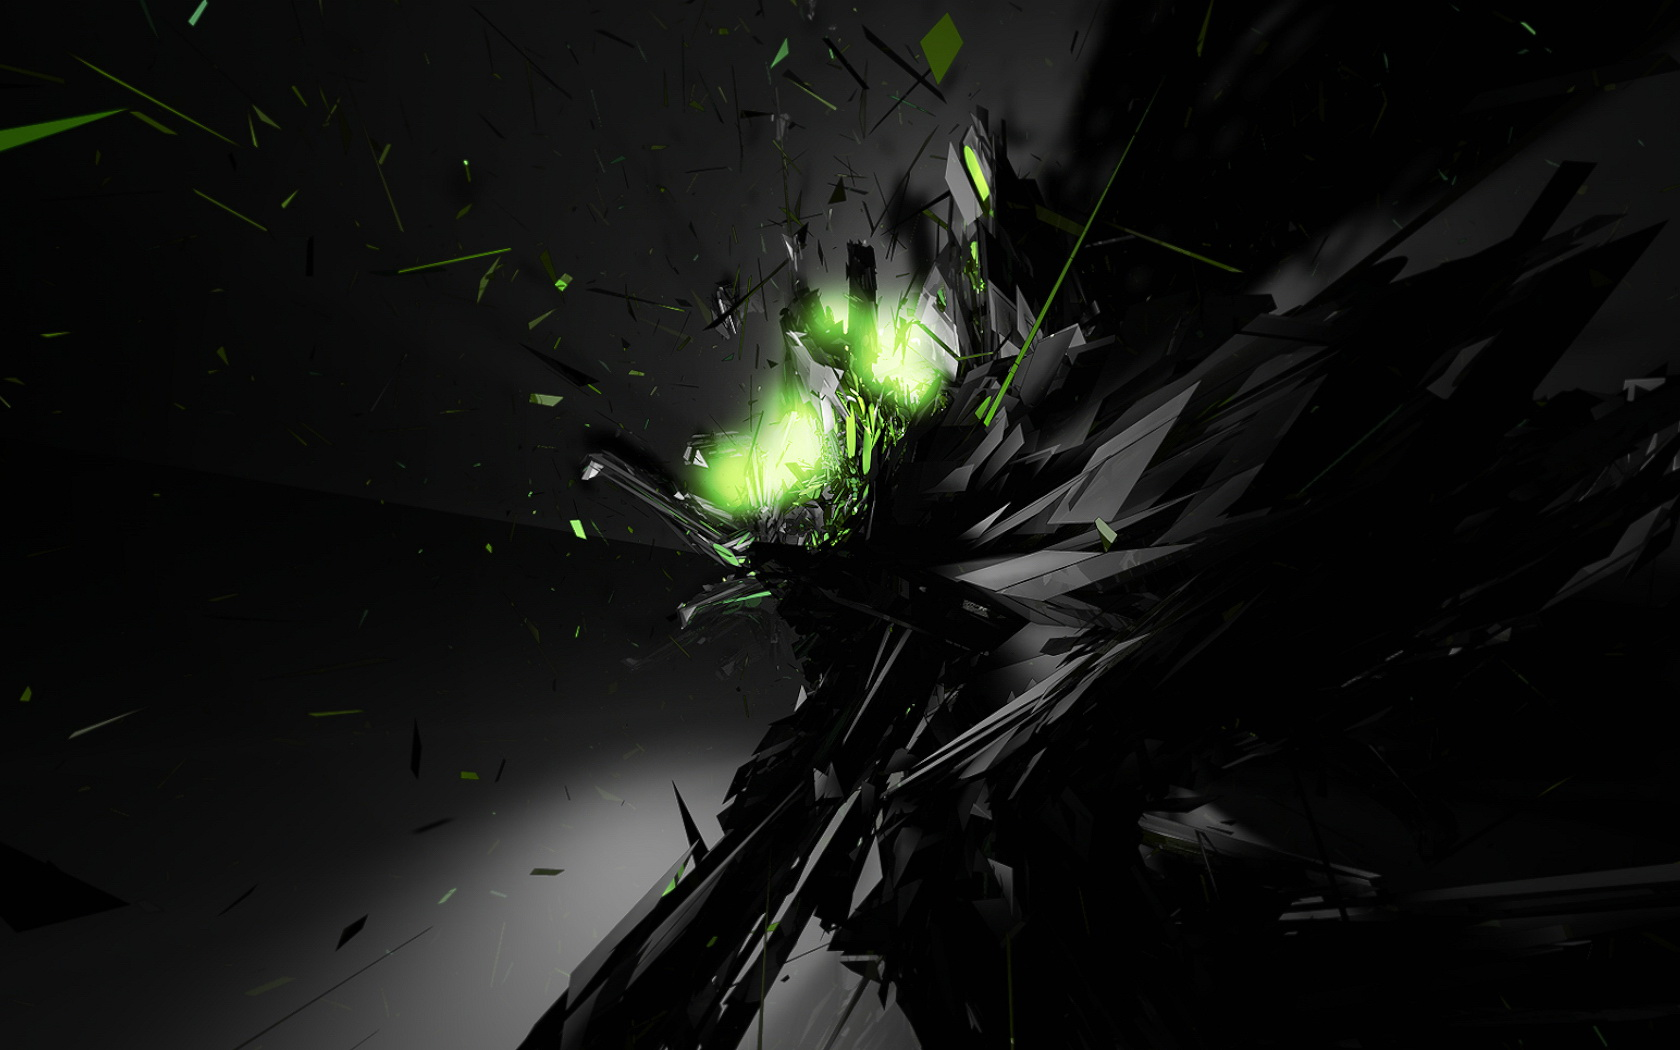 Awesome Abstract Wallpaper